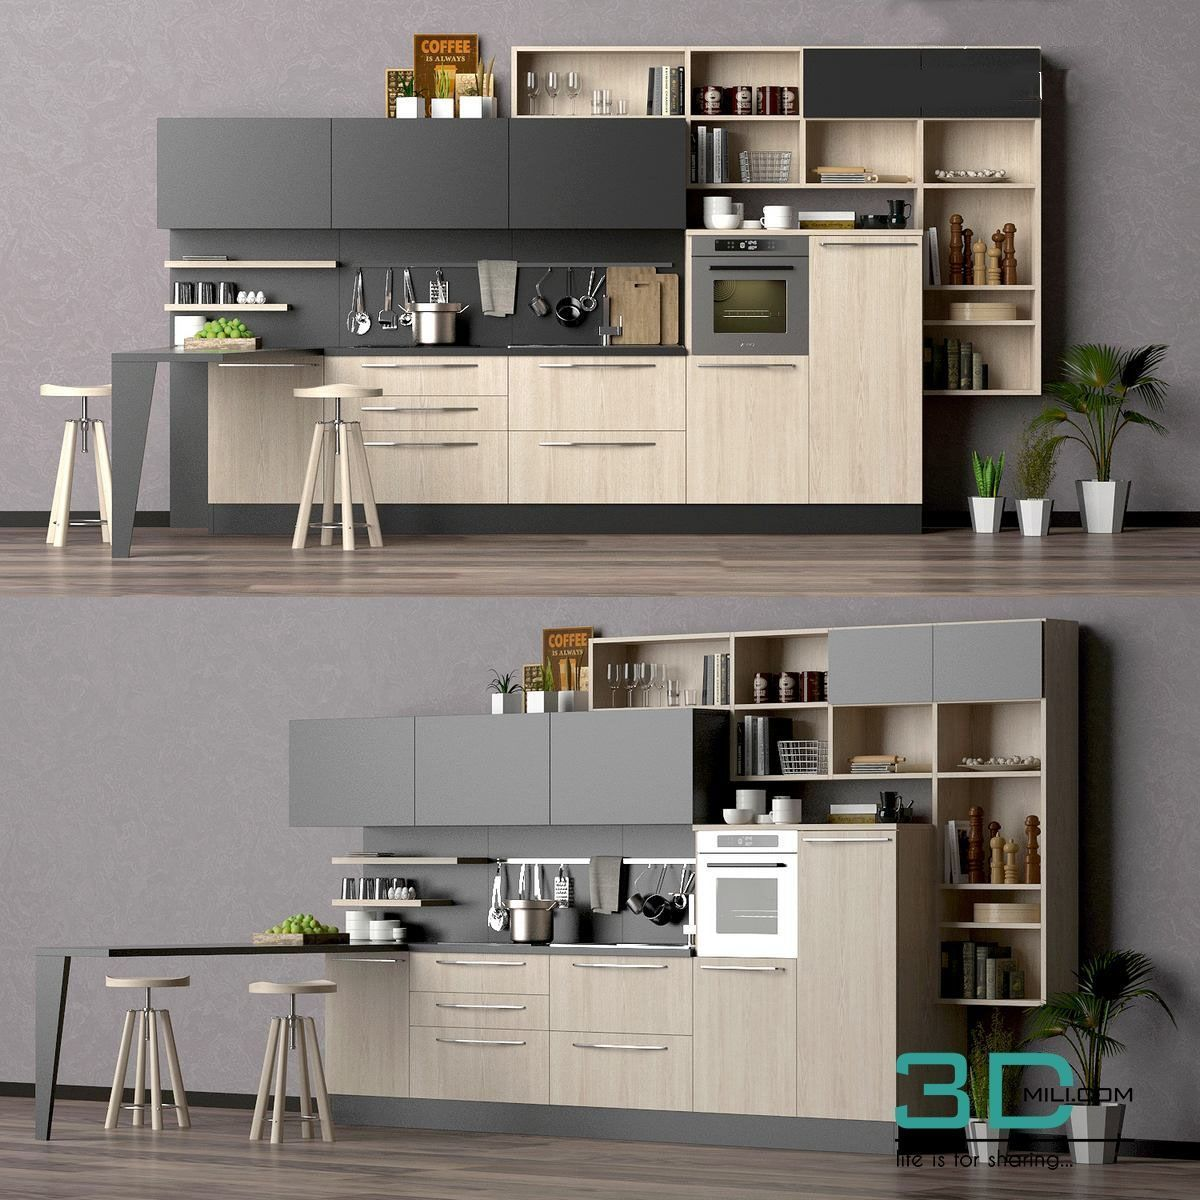 01 Kitchen Room 3d Mili Download 3d Model Free 3d Models 3d Model Download Kitchendesign3dmodelfreedow Kitchen Models Kitchen Interior Kitchen Layout